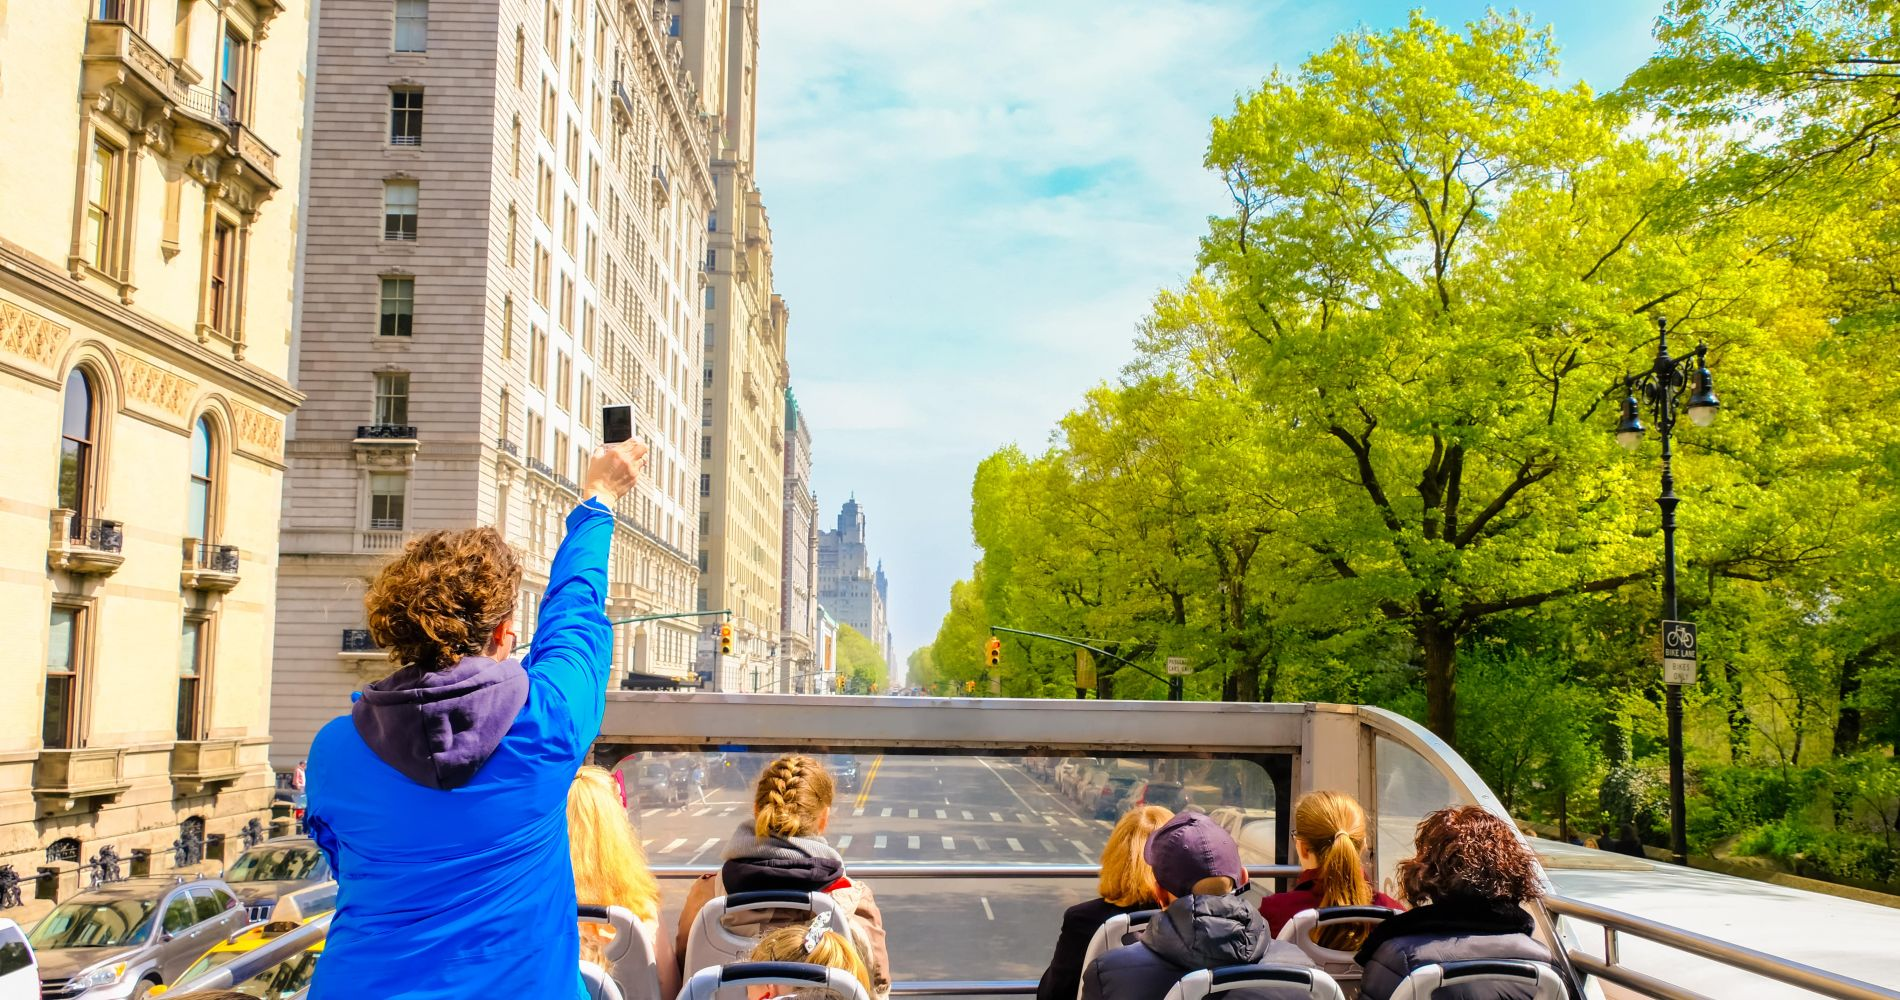 Visit New York attractions with Hop-On Hop-Off Big Bus New York